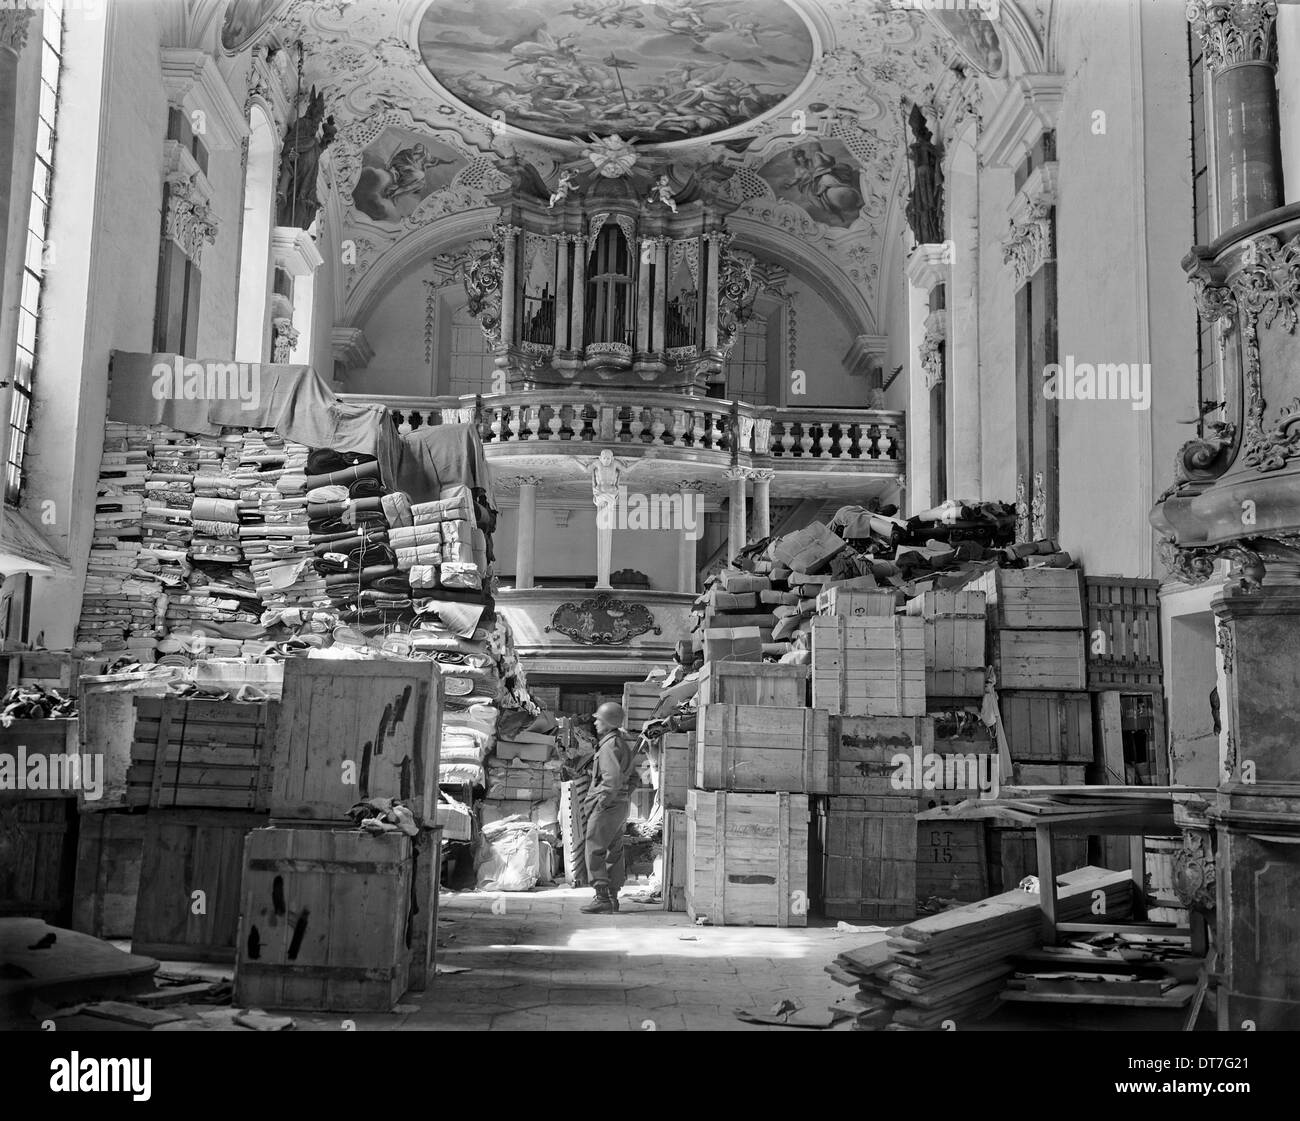 A US soldier from the Third Army views stacks of jewish owned art looted by the Nazi hidden in a church April 24, 1945 in Ellingen, Germany. - Stock Image